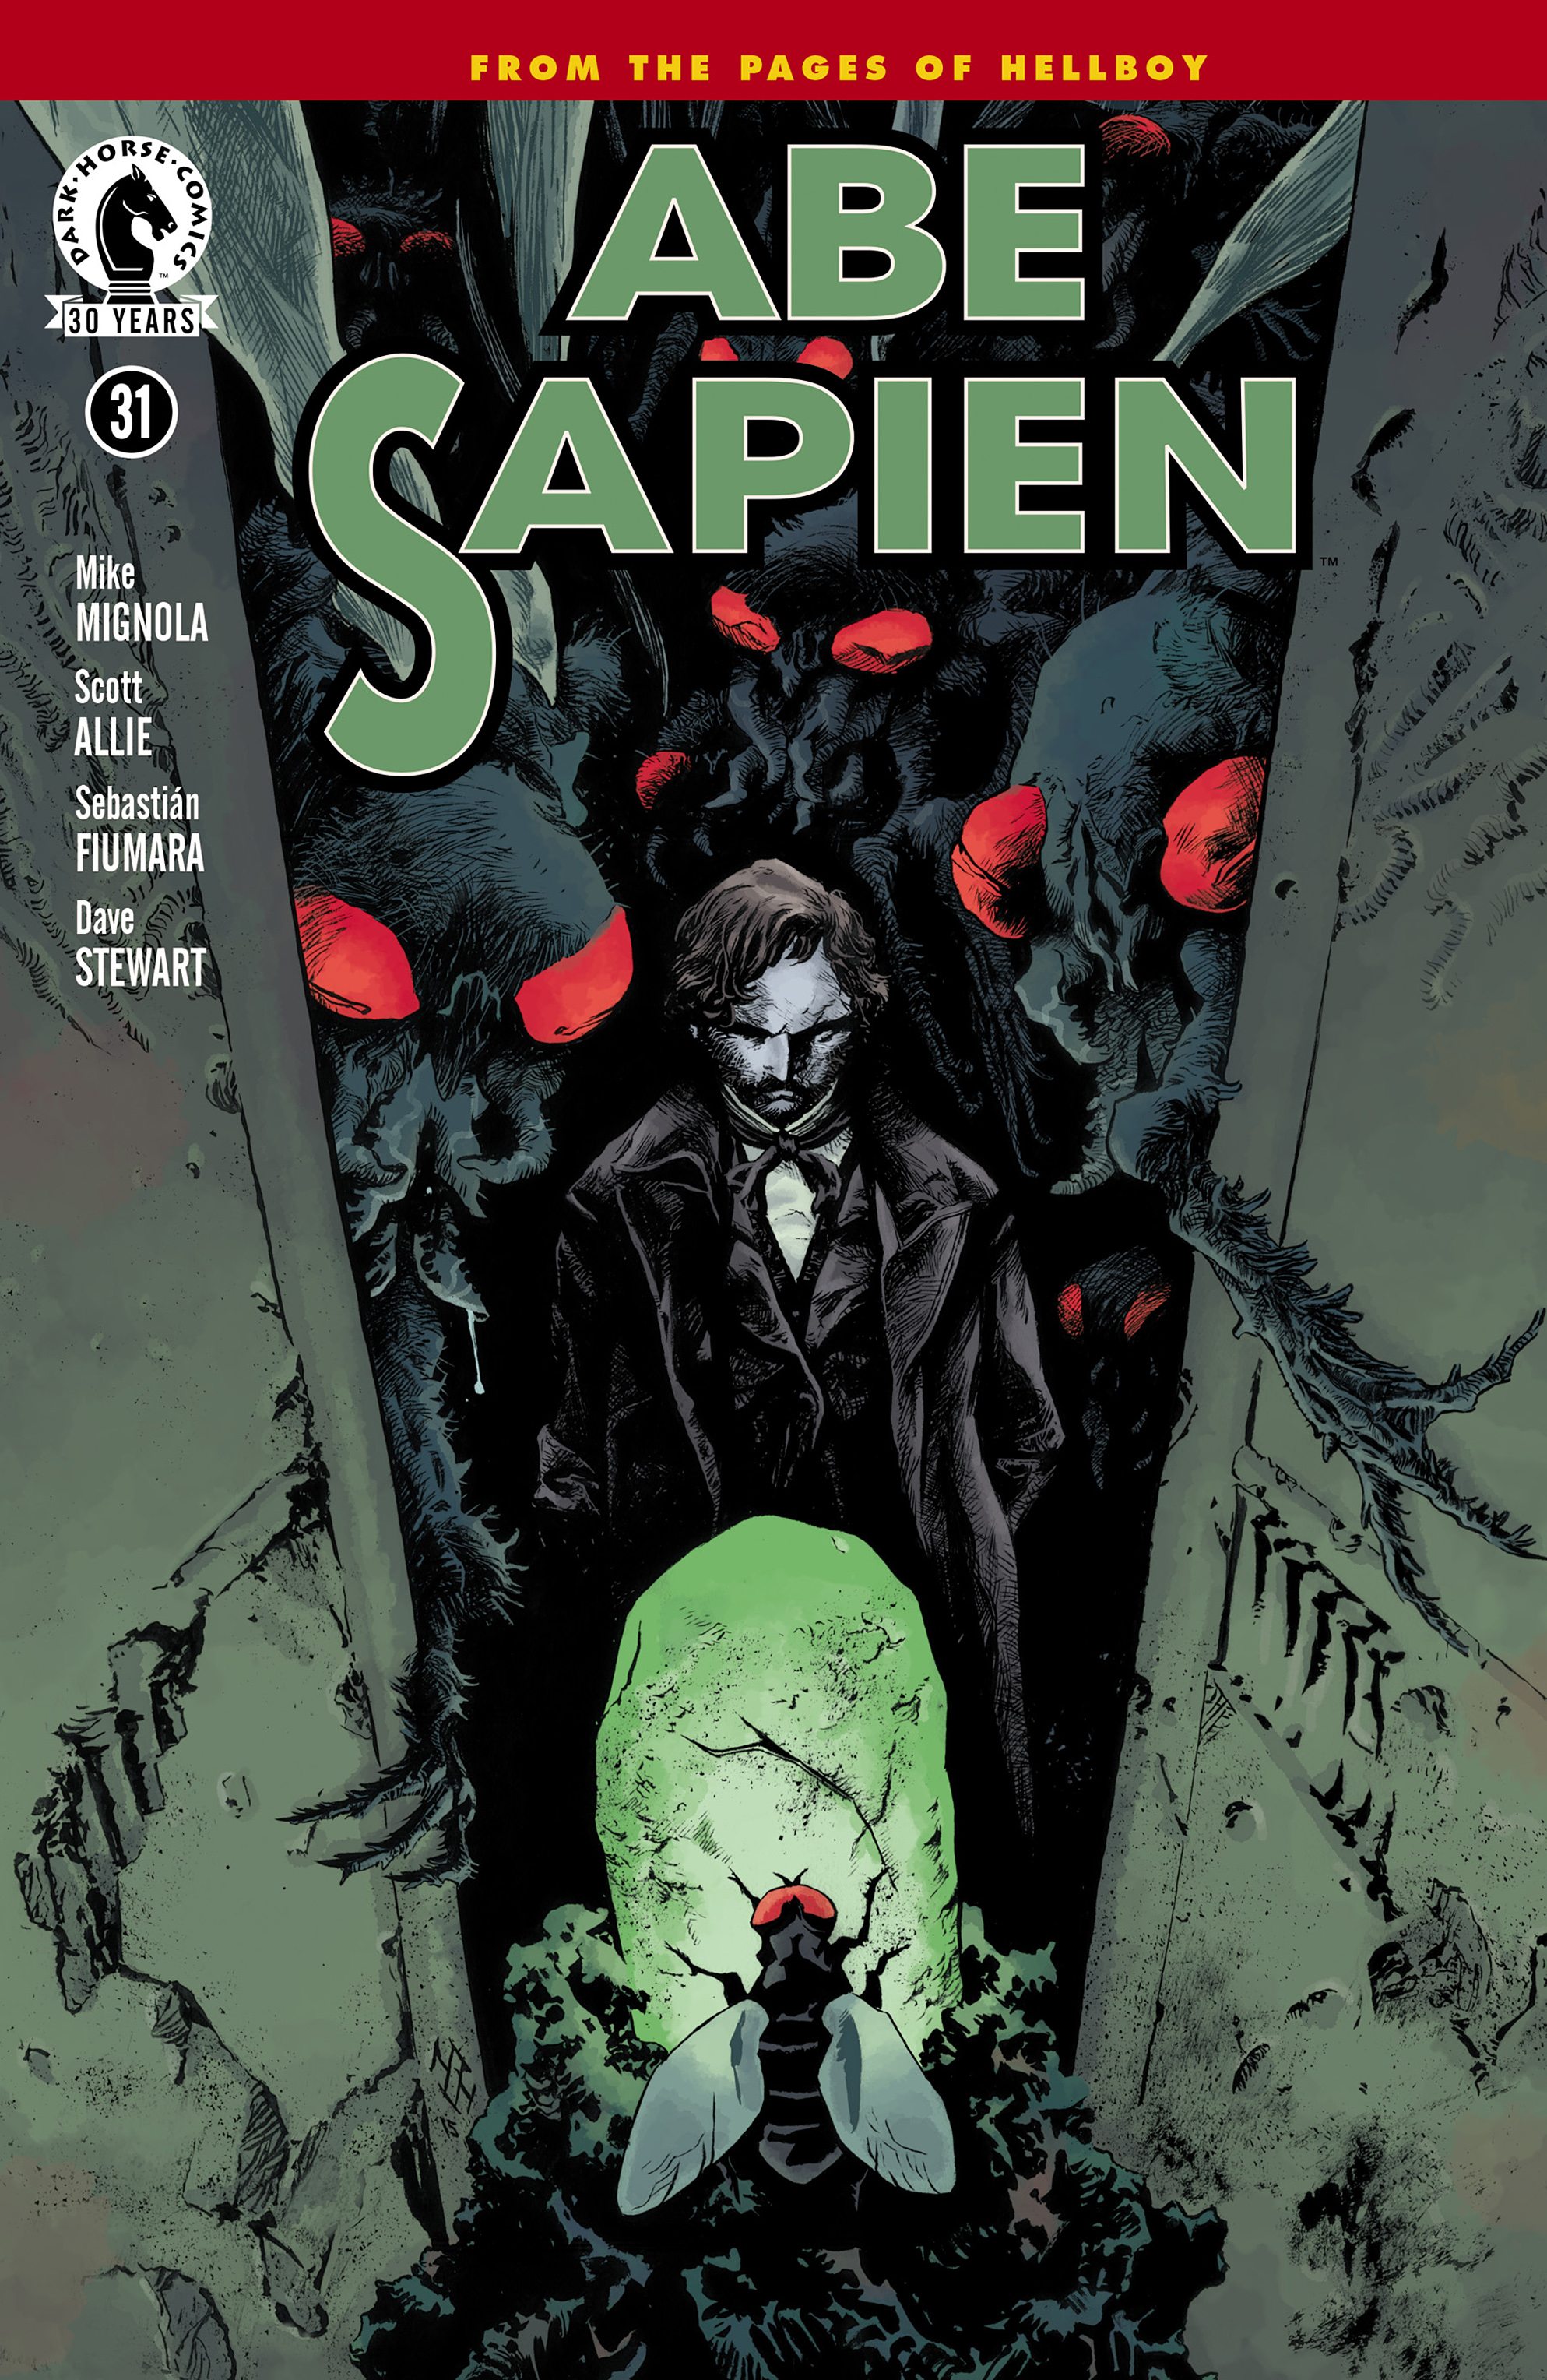 Read online Abe Sapien comic -  Issue #31 - 1